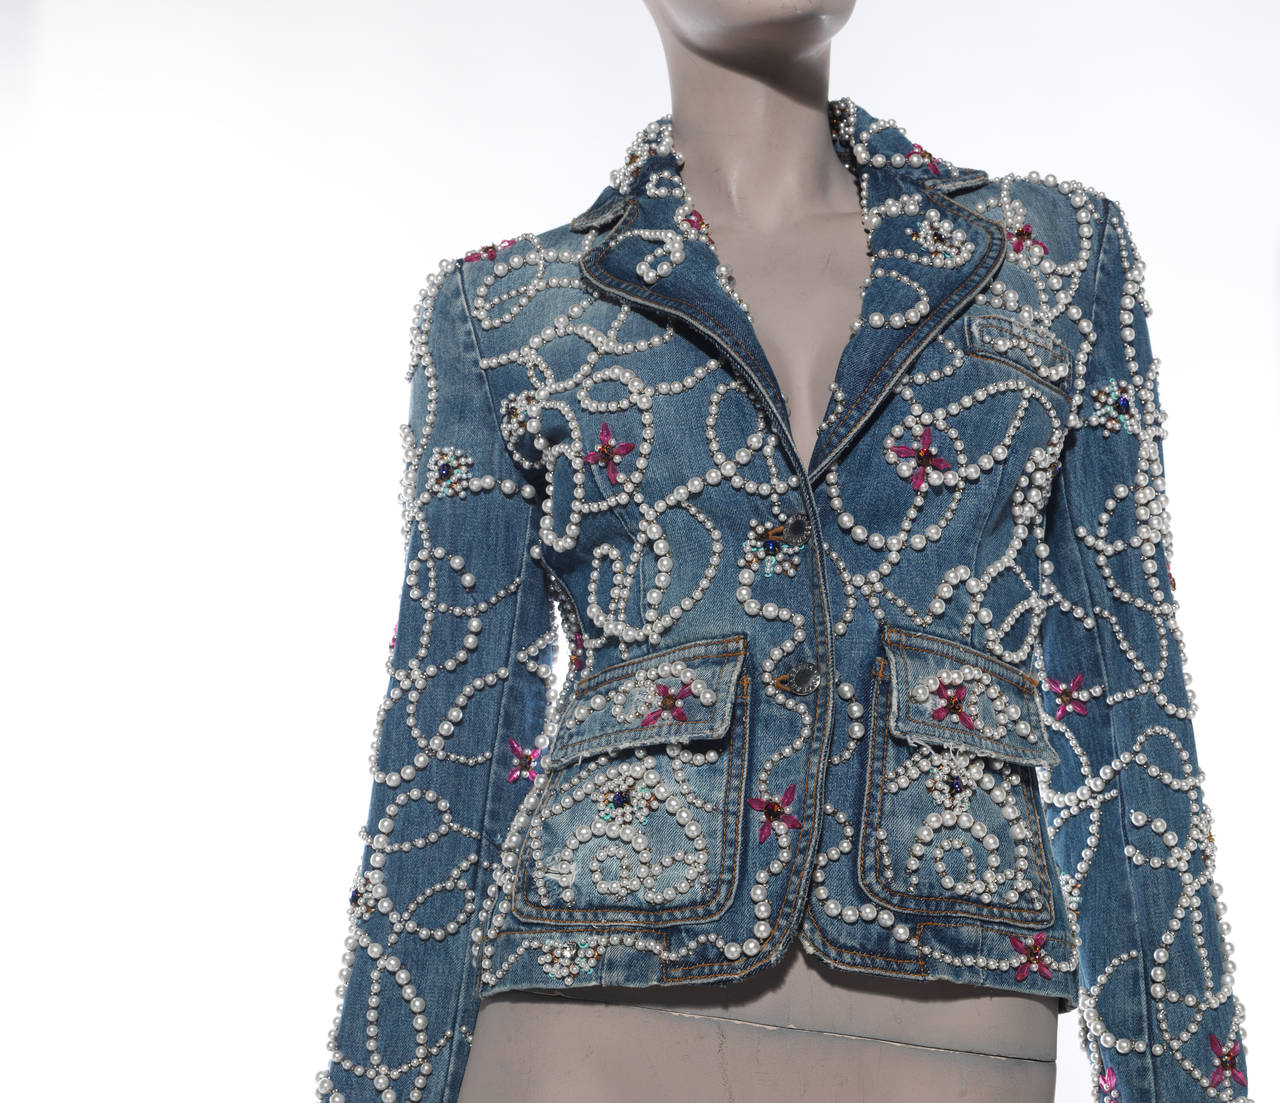 Dolce & Gabbana Pearl Encrusted Denim Jacket 6